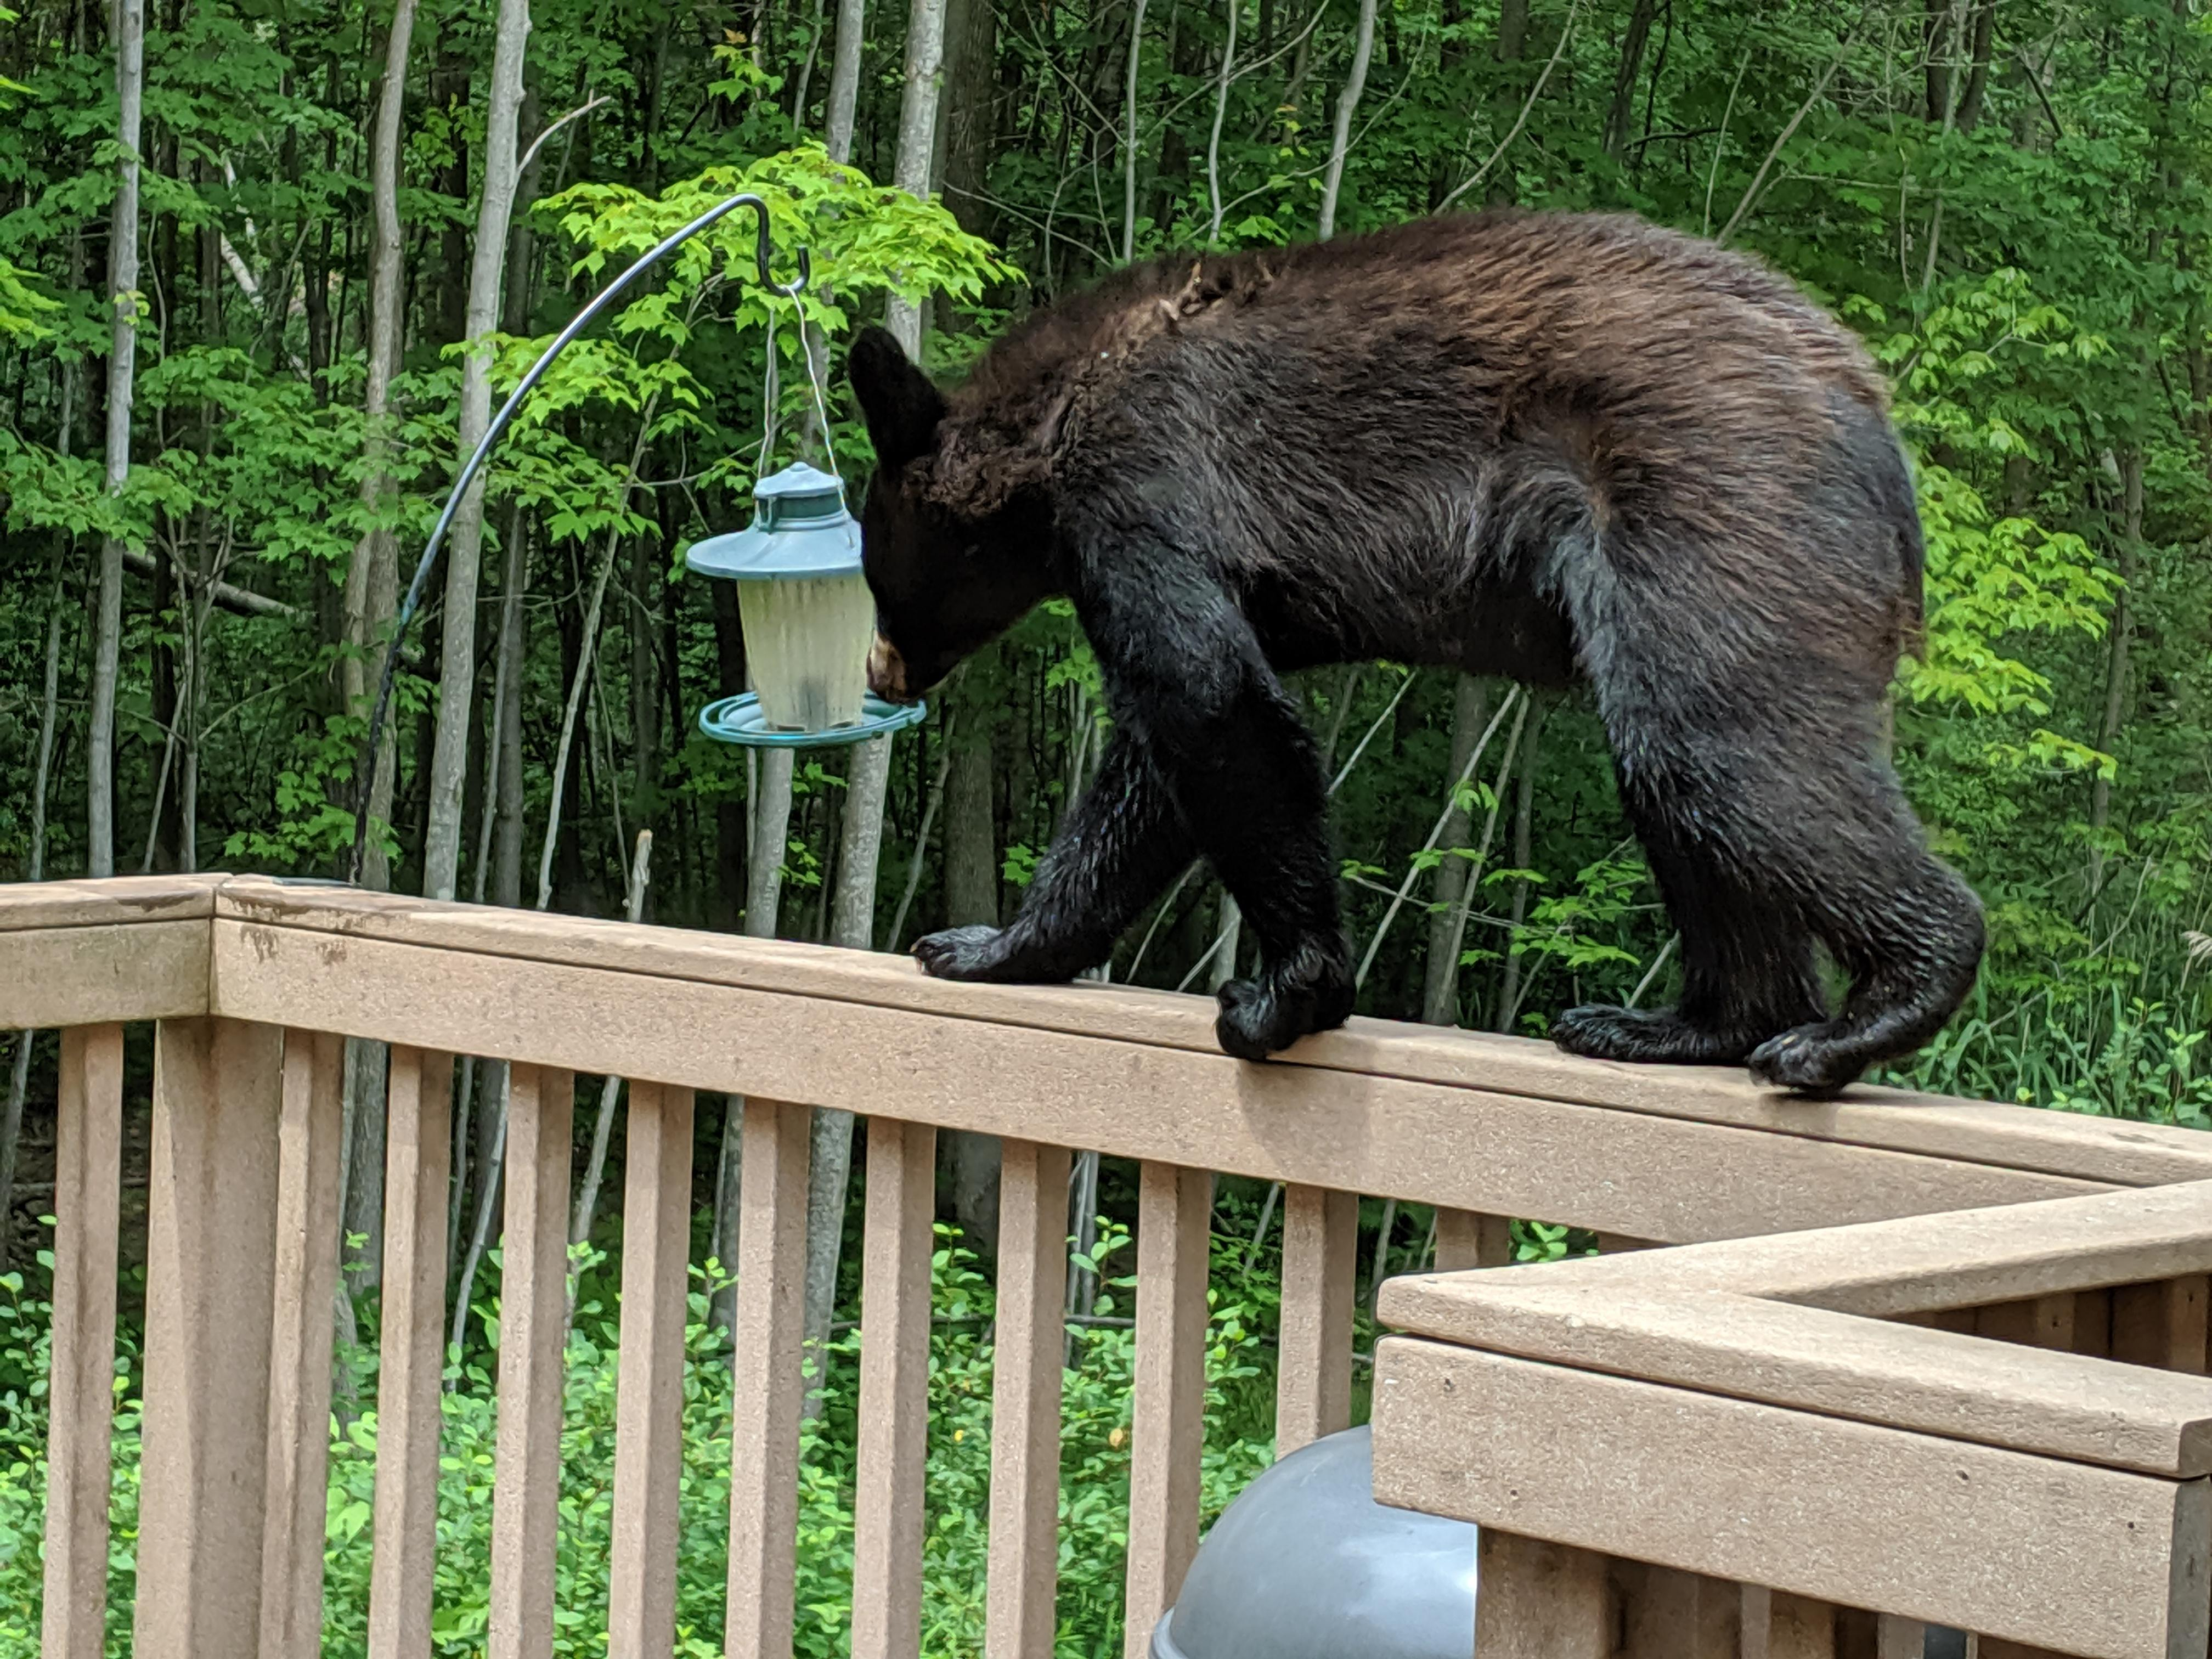 A bear sniffs around a bird feeder in Suamico July 1, 2019. (Photo courtesy Sherri Baierl)